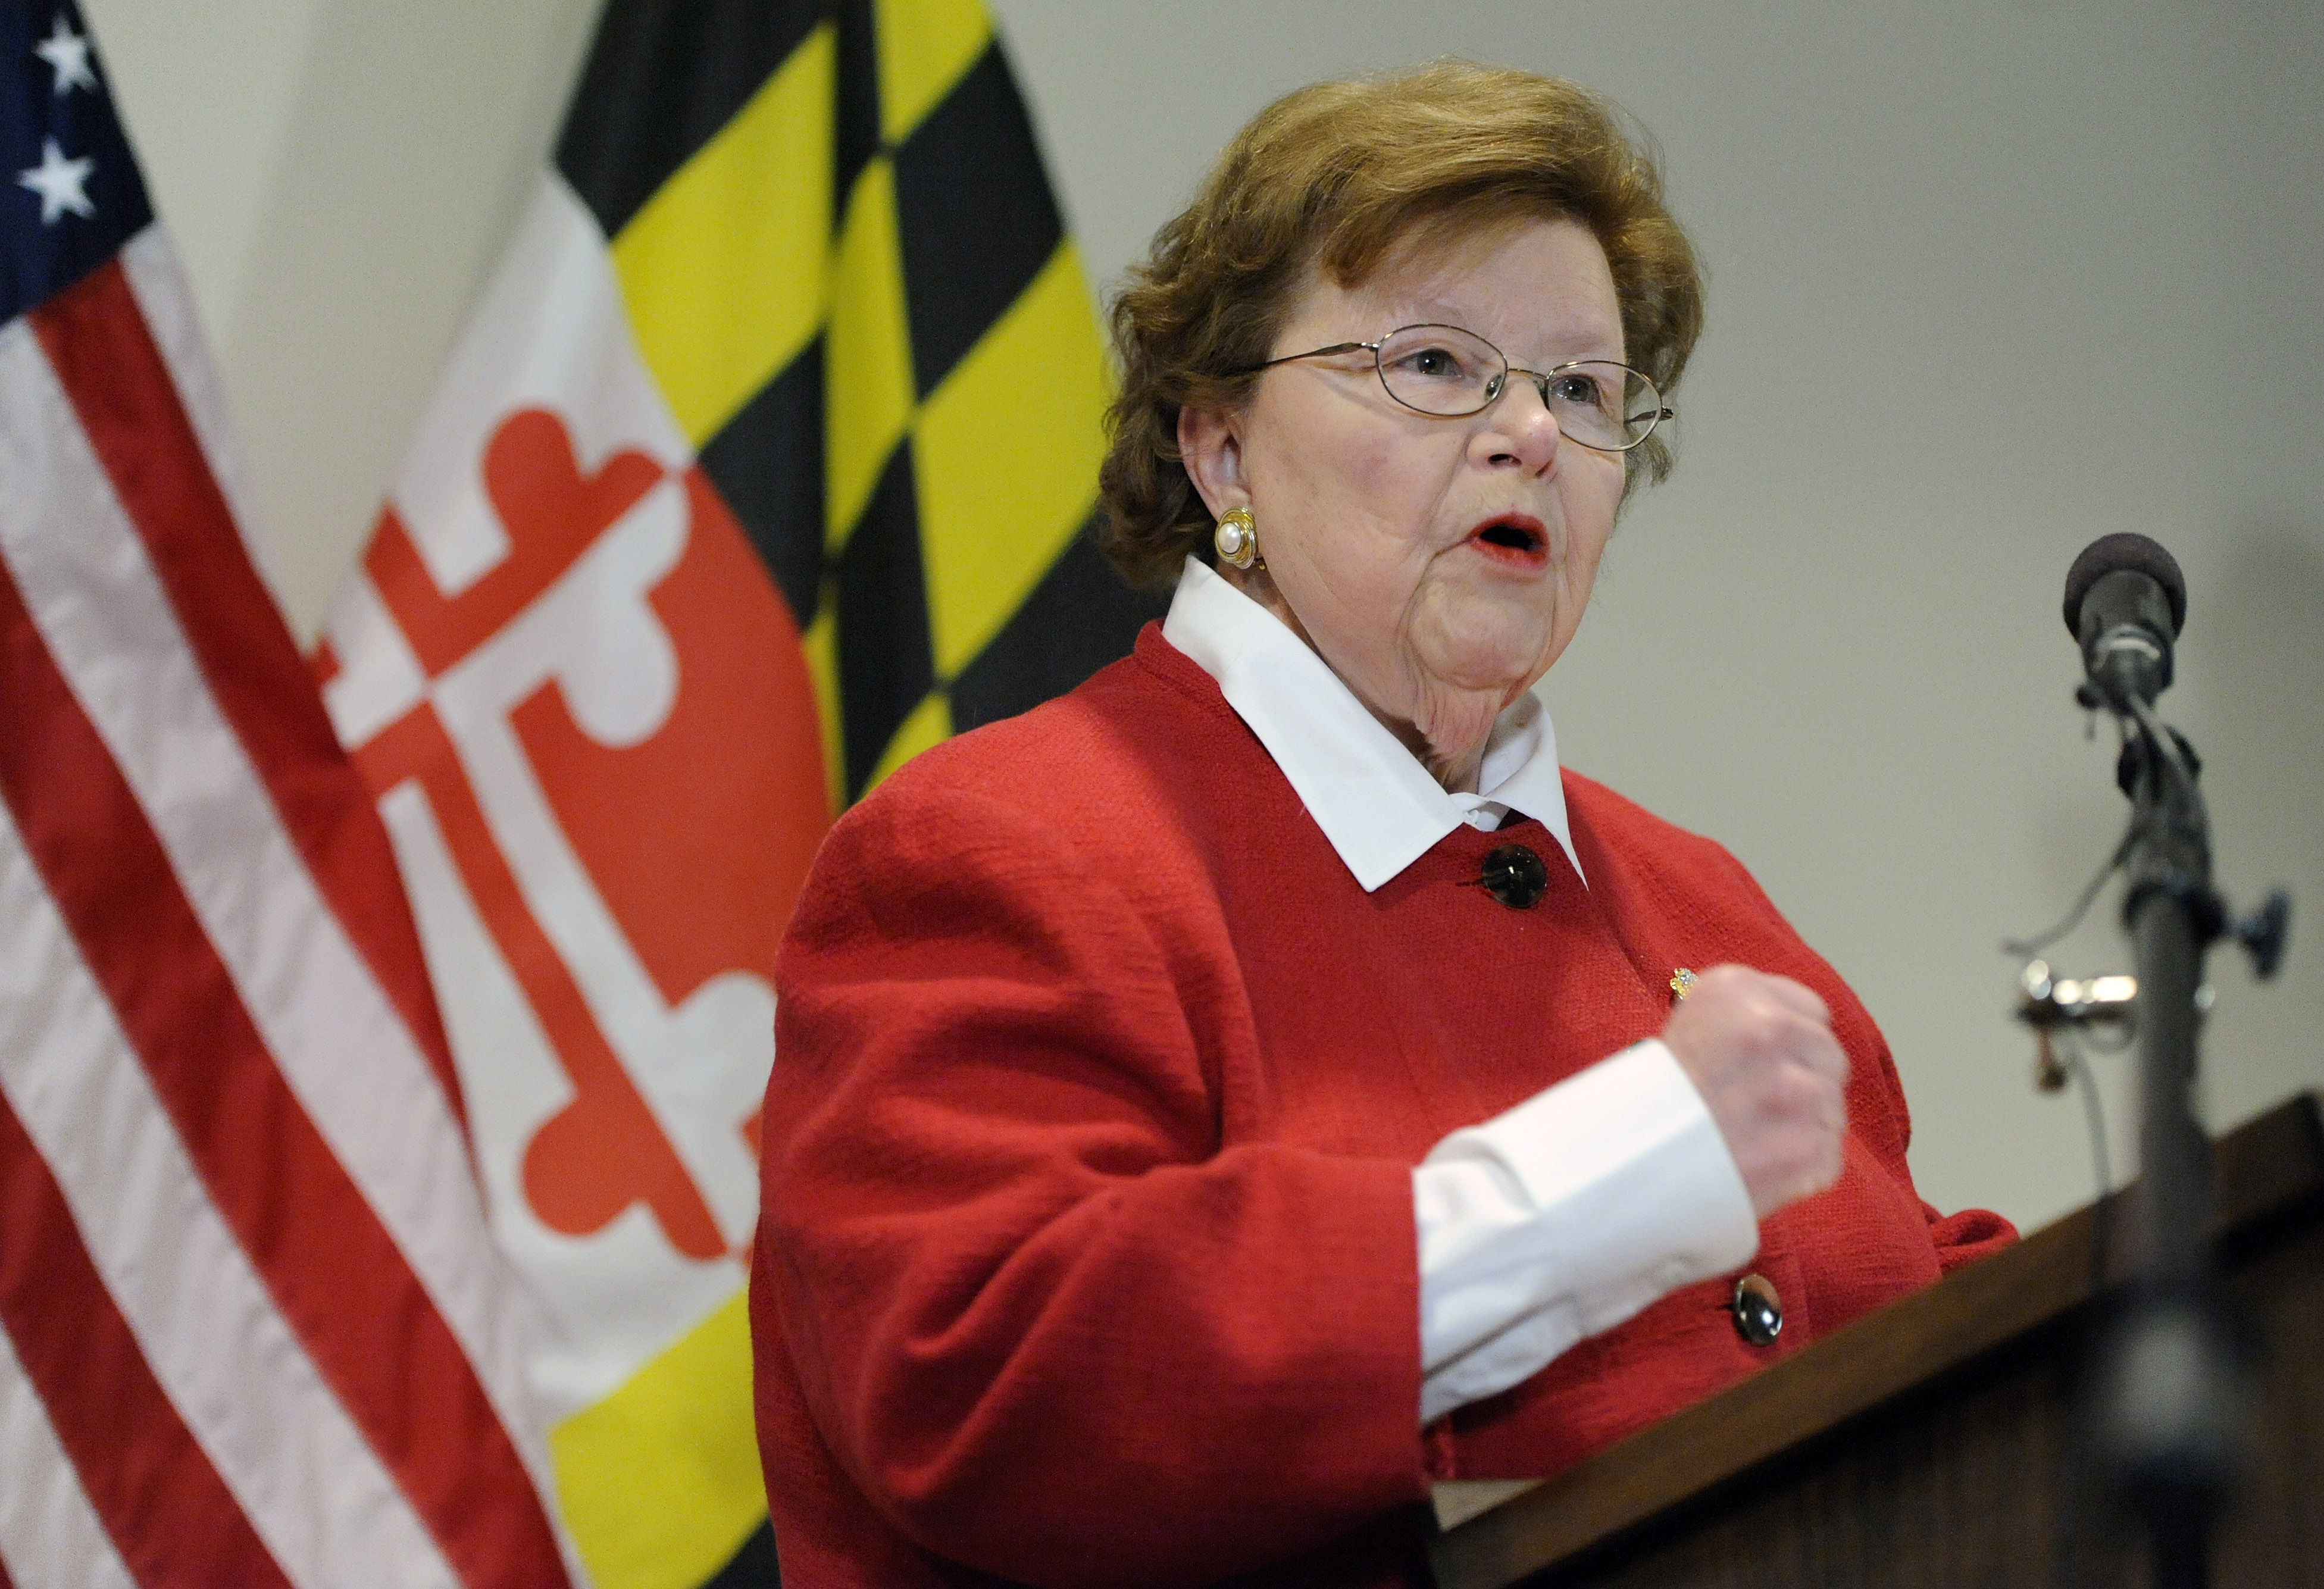 FILE - Sen. Barbara Mikulski, D-Md., the longest-serving woman in the history of Congress, speaks during a news conference in Baltimore, March 2, 2015.